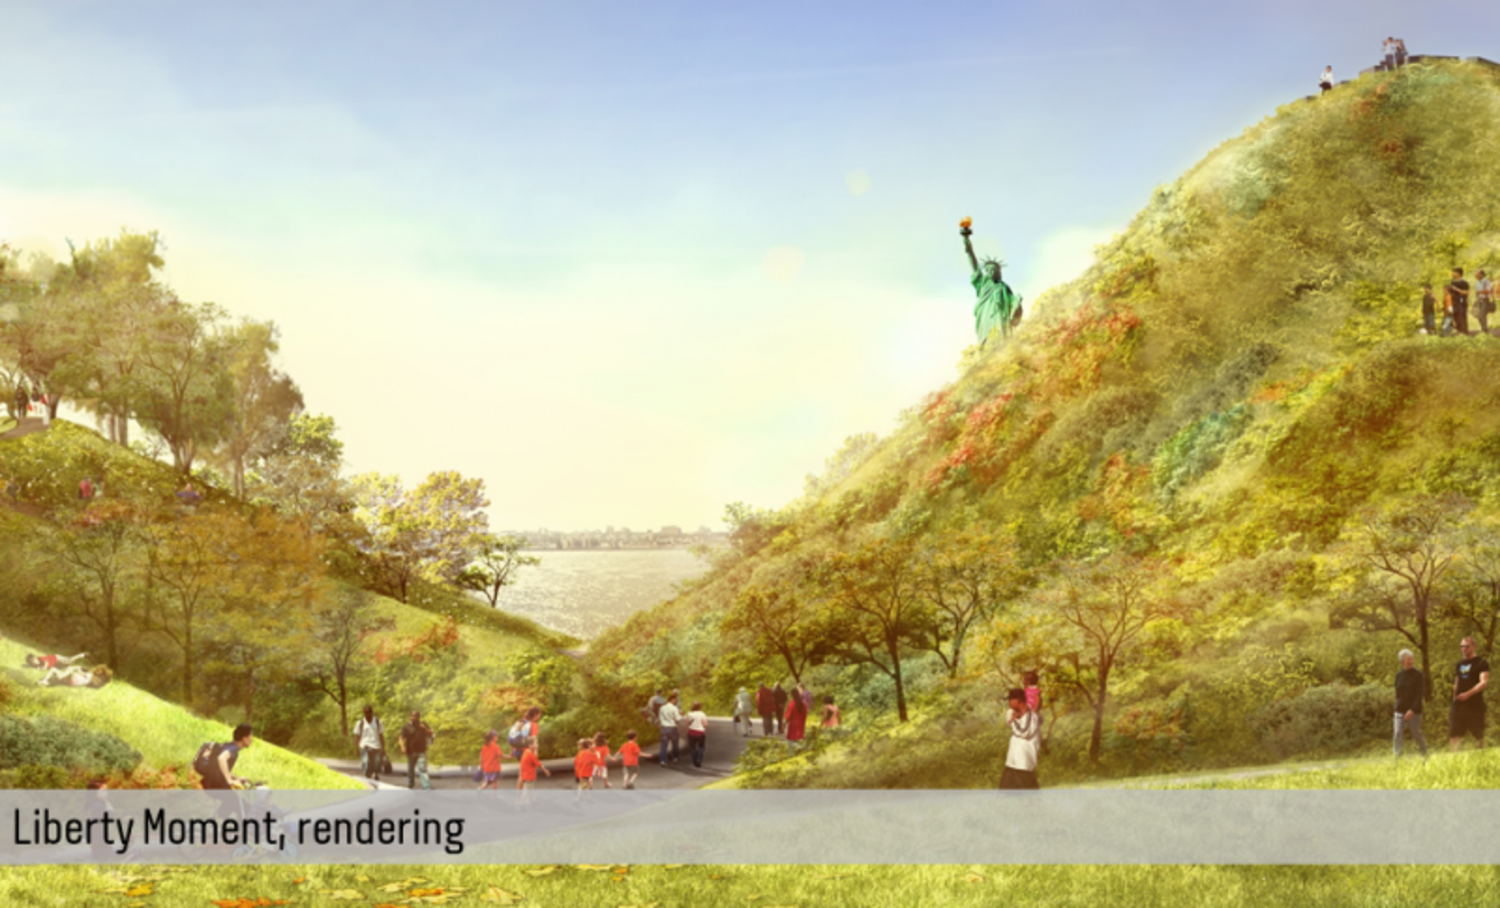 Rendering of Liberty Monument